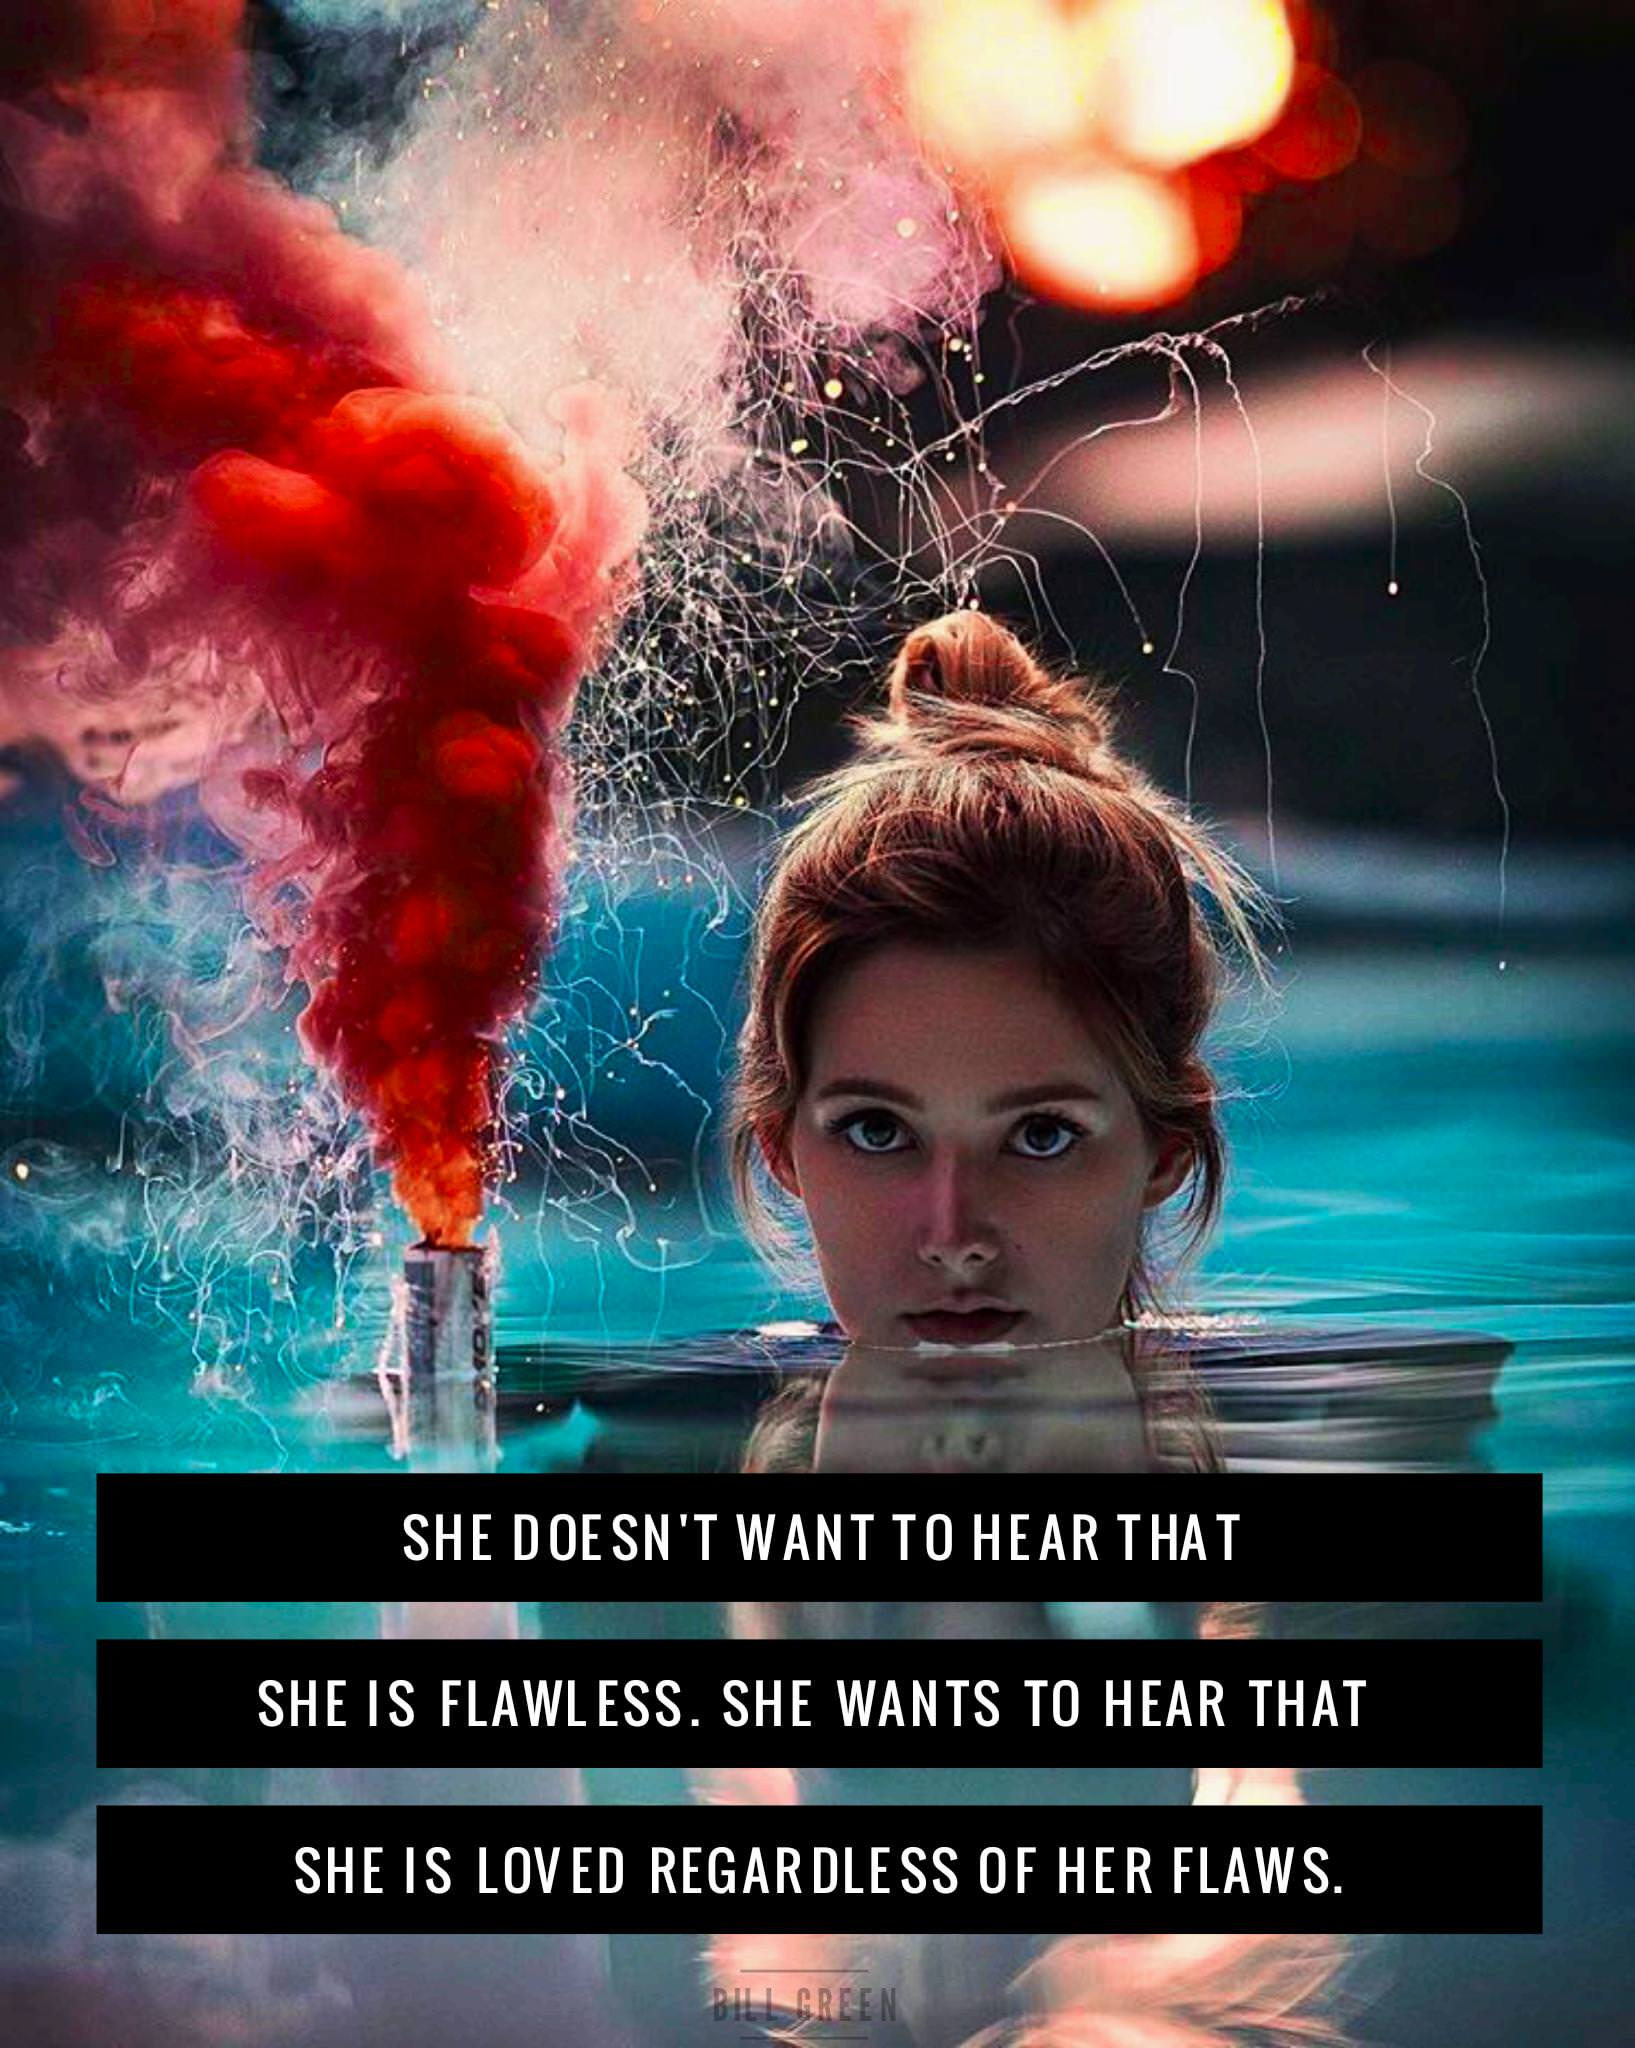 She doesn't want to hear that she is flawless… Bill Green IG @billgreeen [1635×2048]